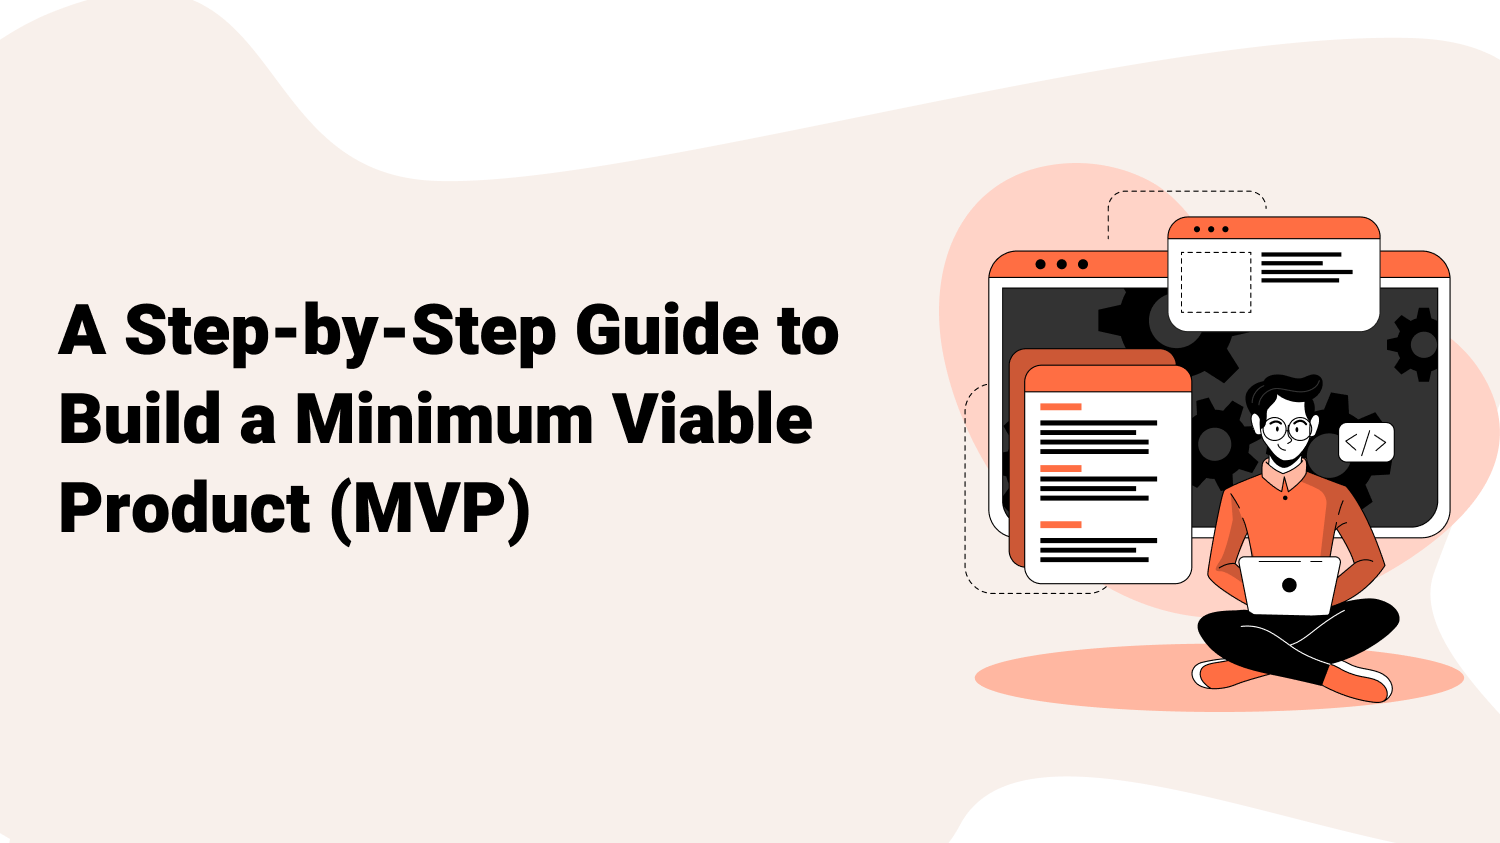 A Step-by-Step Guide to Build a Minimum Viable Product (MVP)